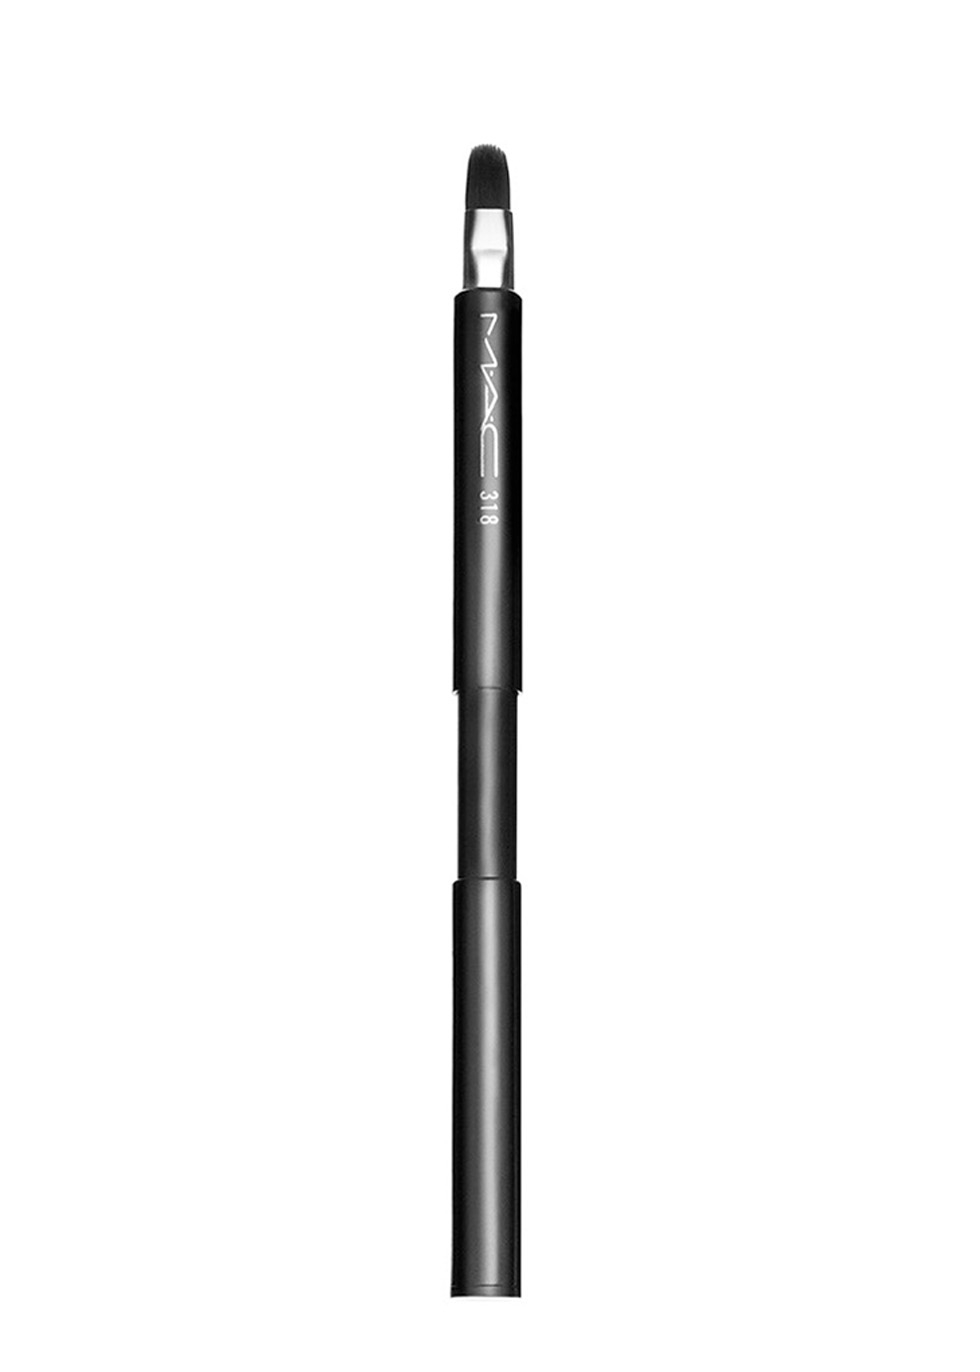 318 Retractable Lip Brush